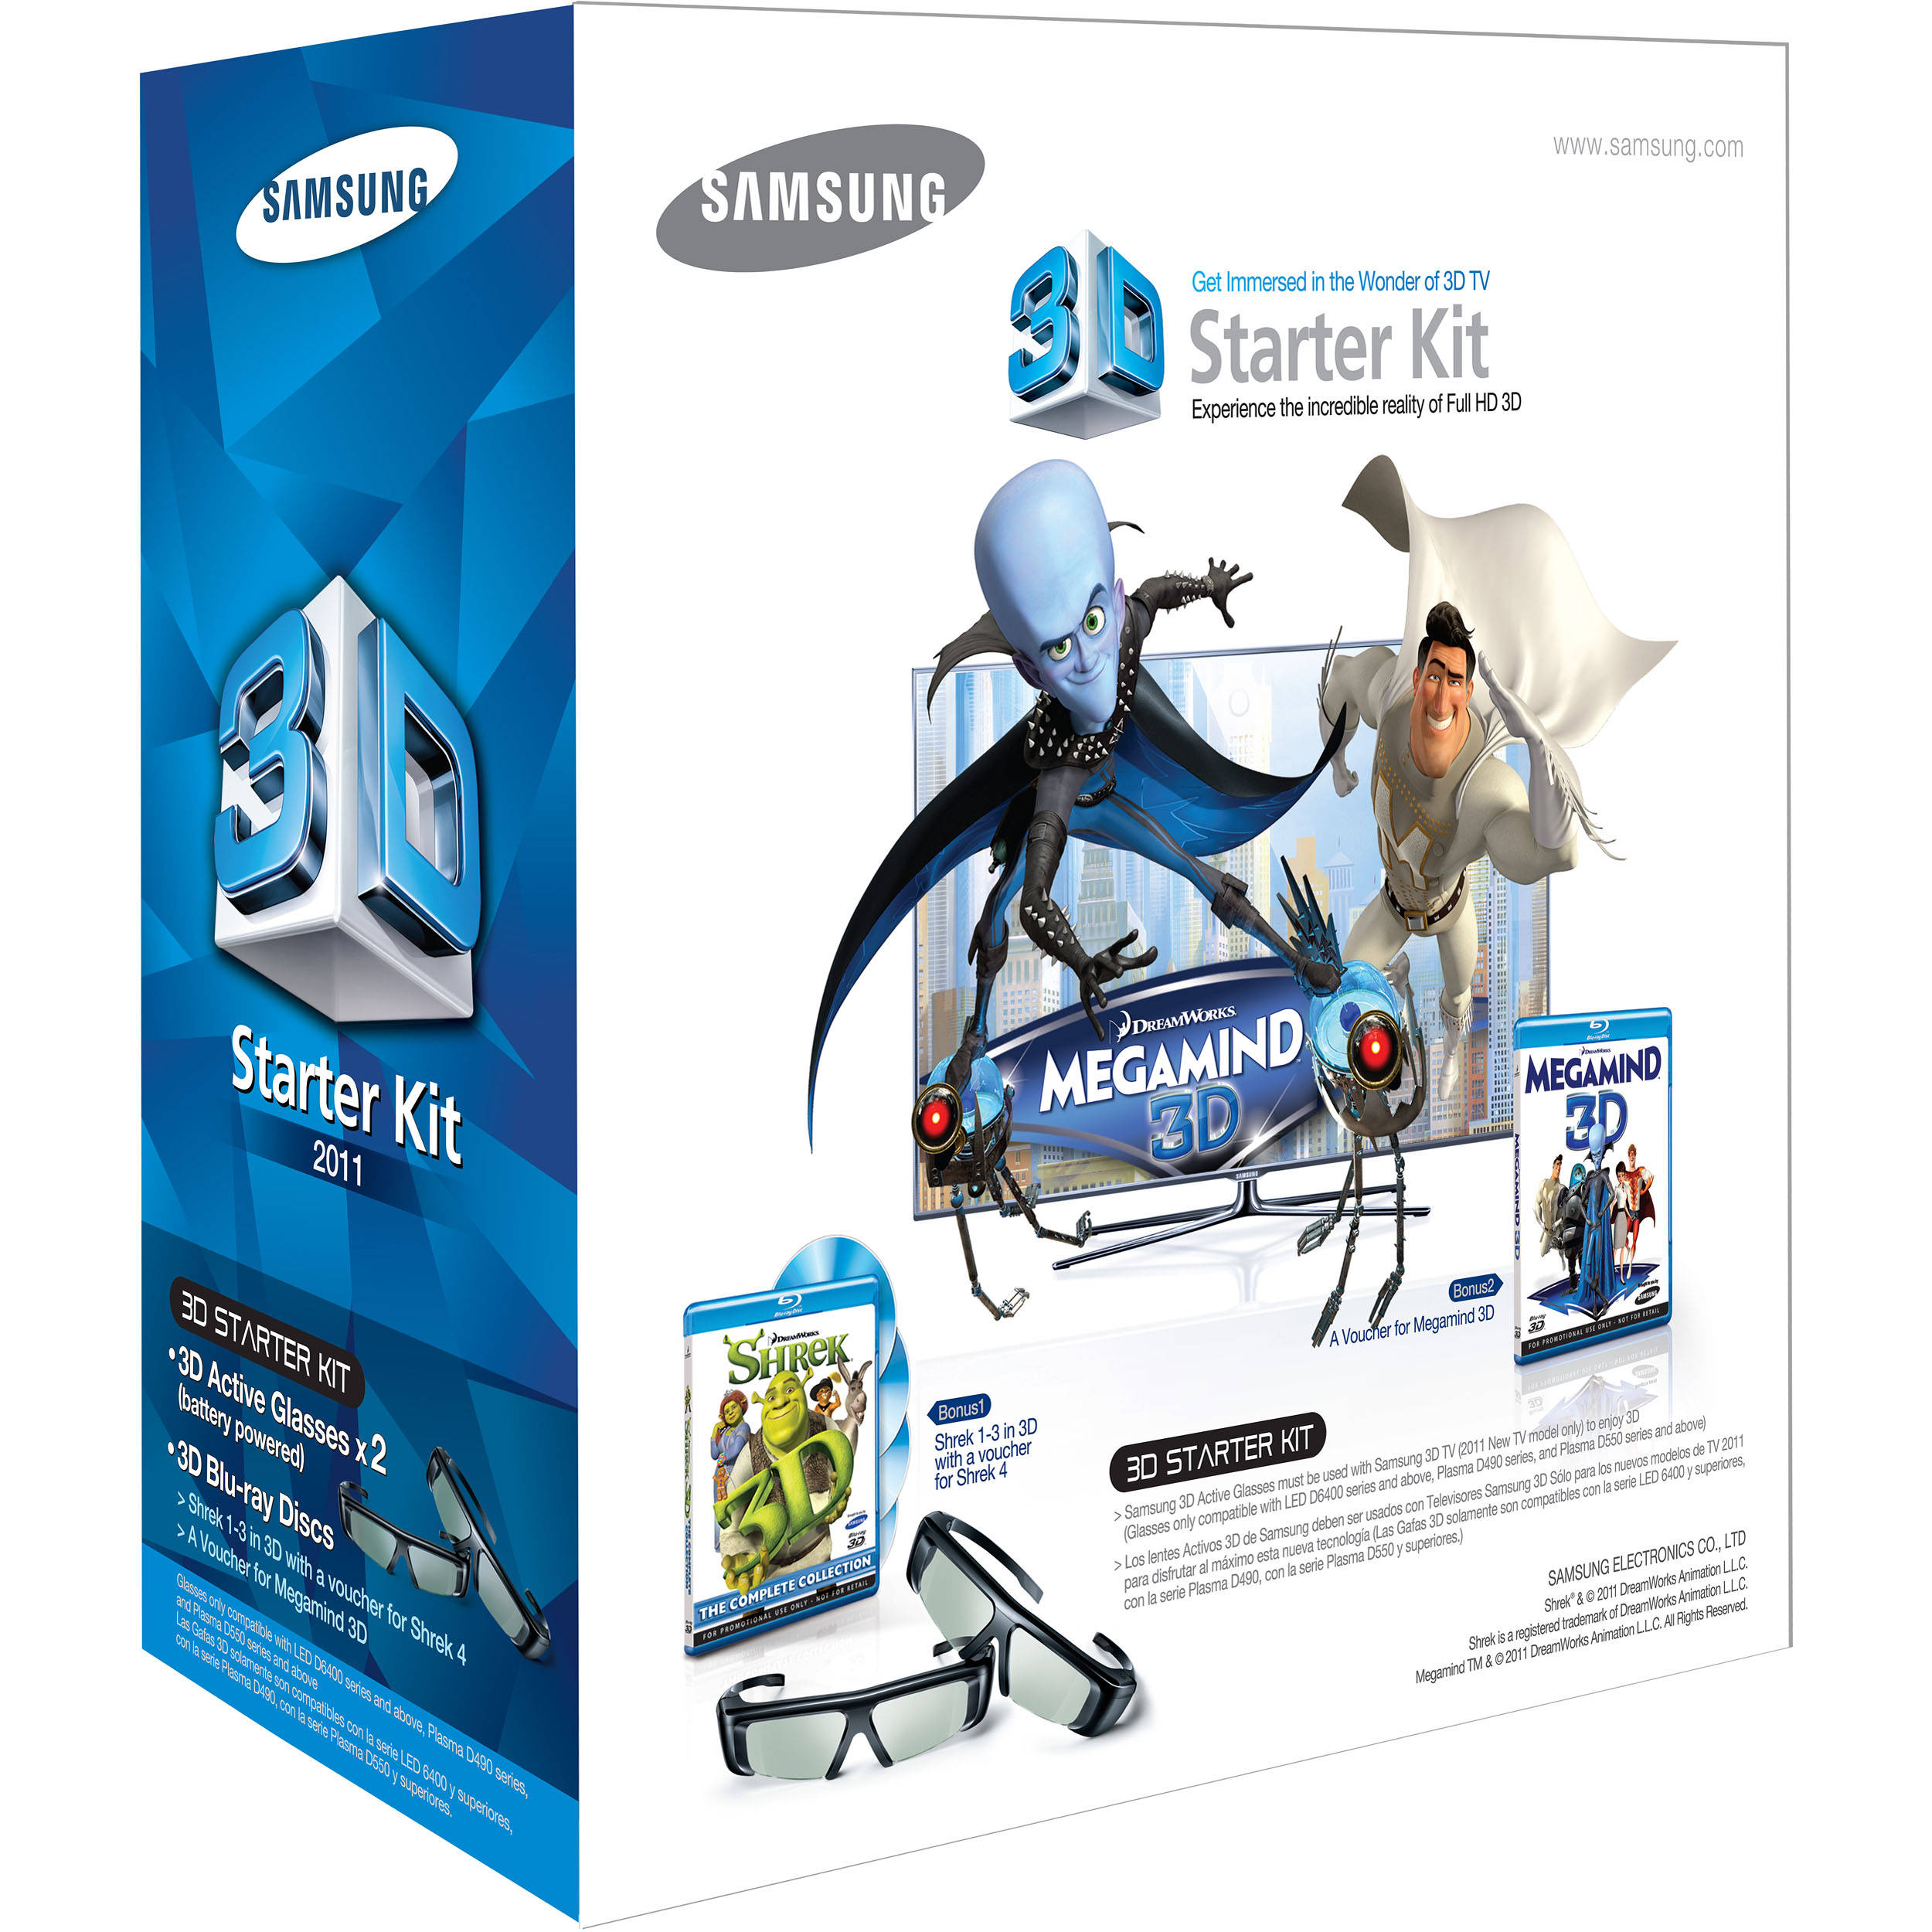 706a5dd7766a Samsung 3D Starter Kit 2011 with 3D Glasses and 3D SSG-P3100M/ZA